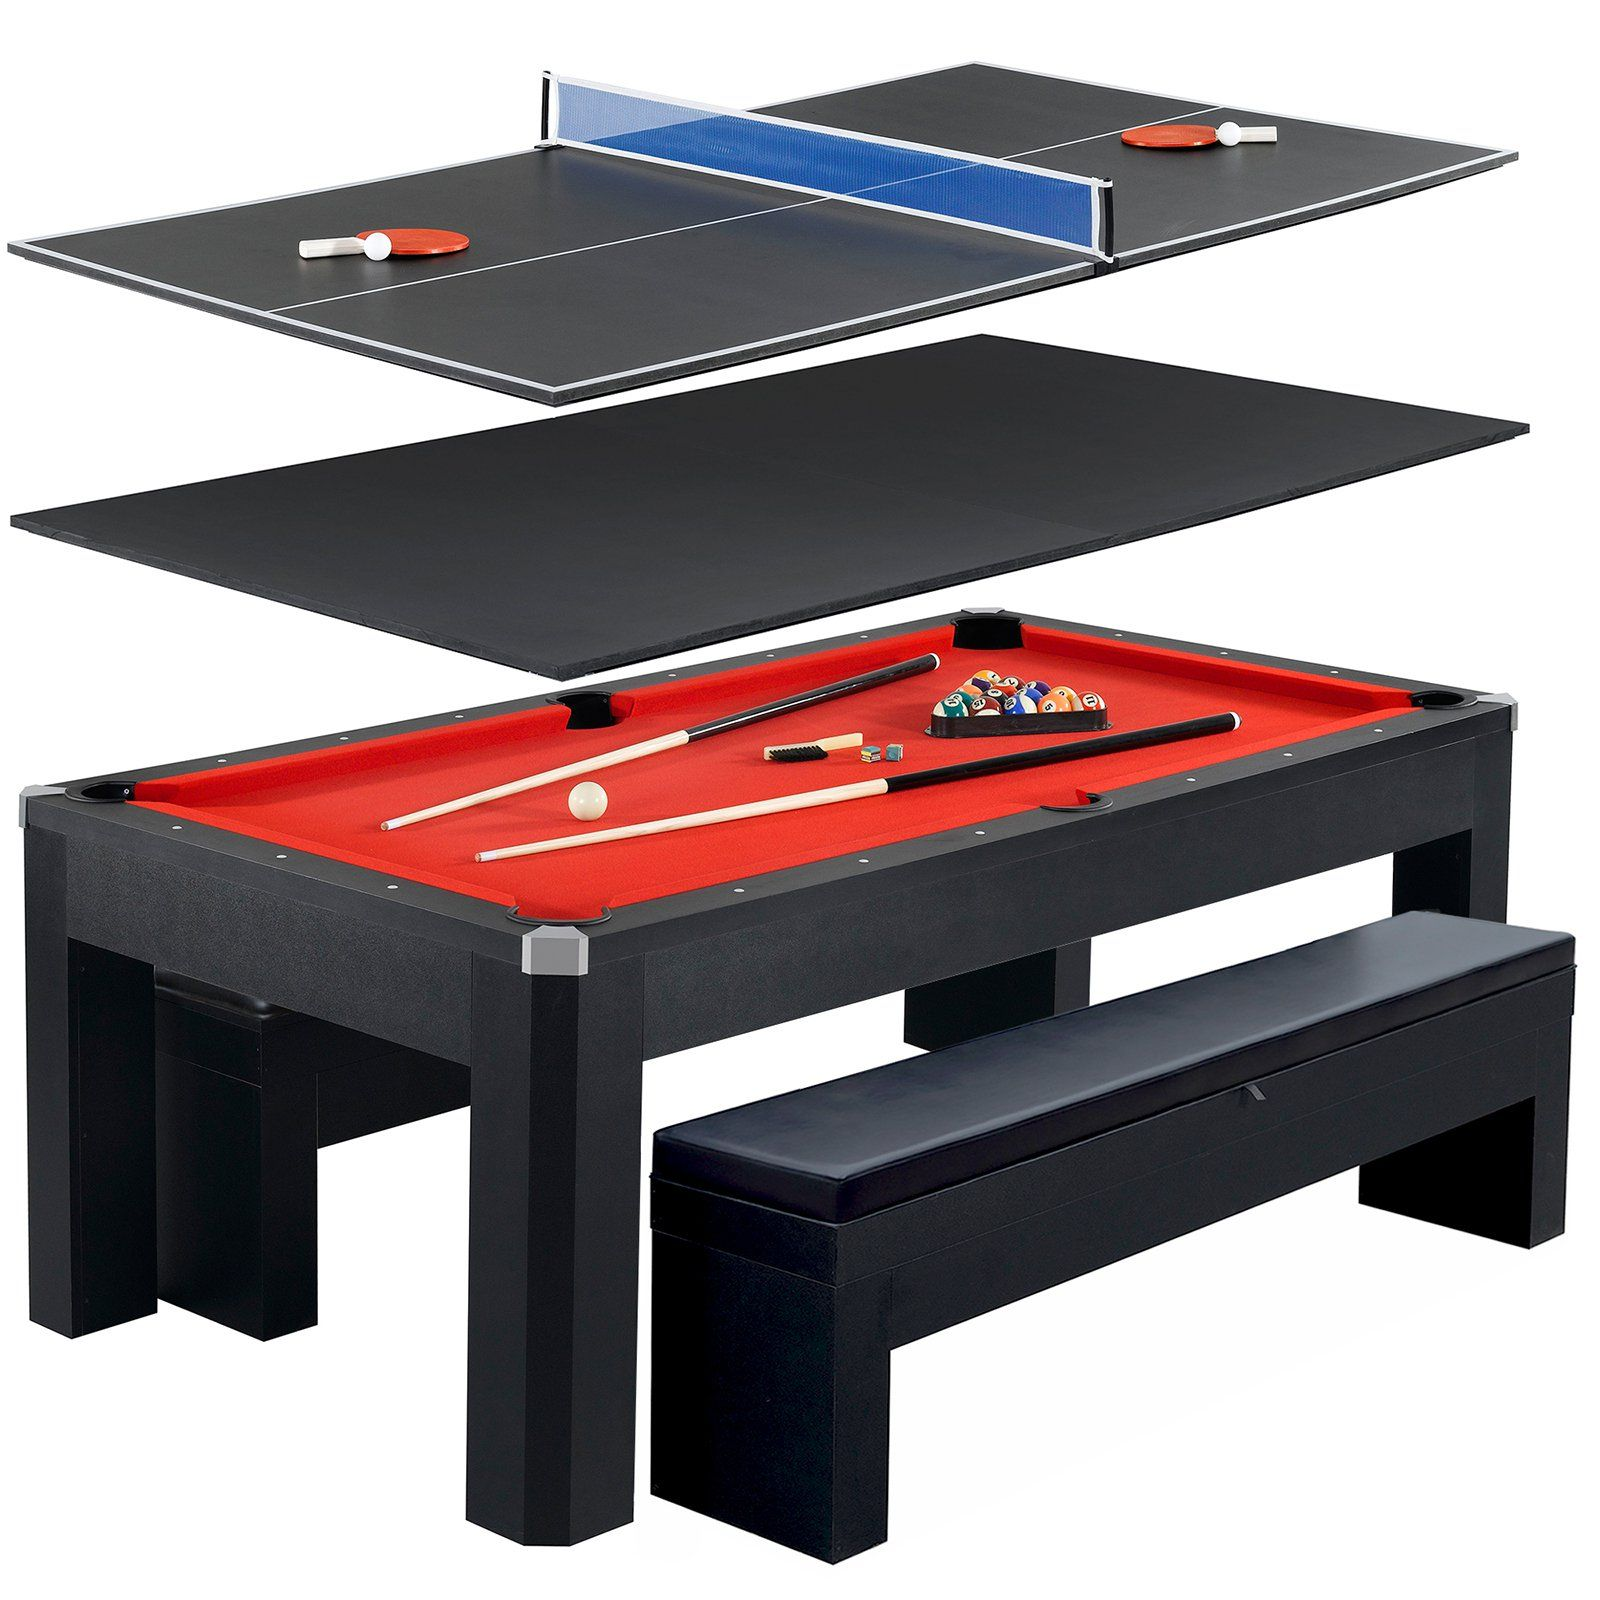 Peachy Hathaway Park Avenue 7 Ft Pool Table Combo Set With Benches Pdpeps Interior Chair Design Pdpepsorg